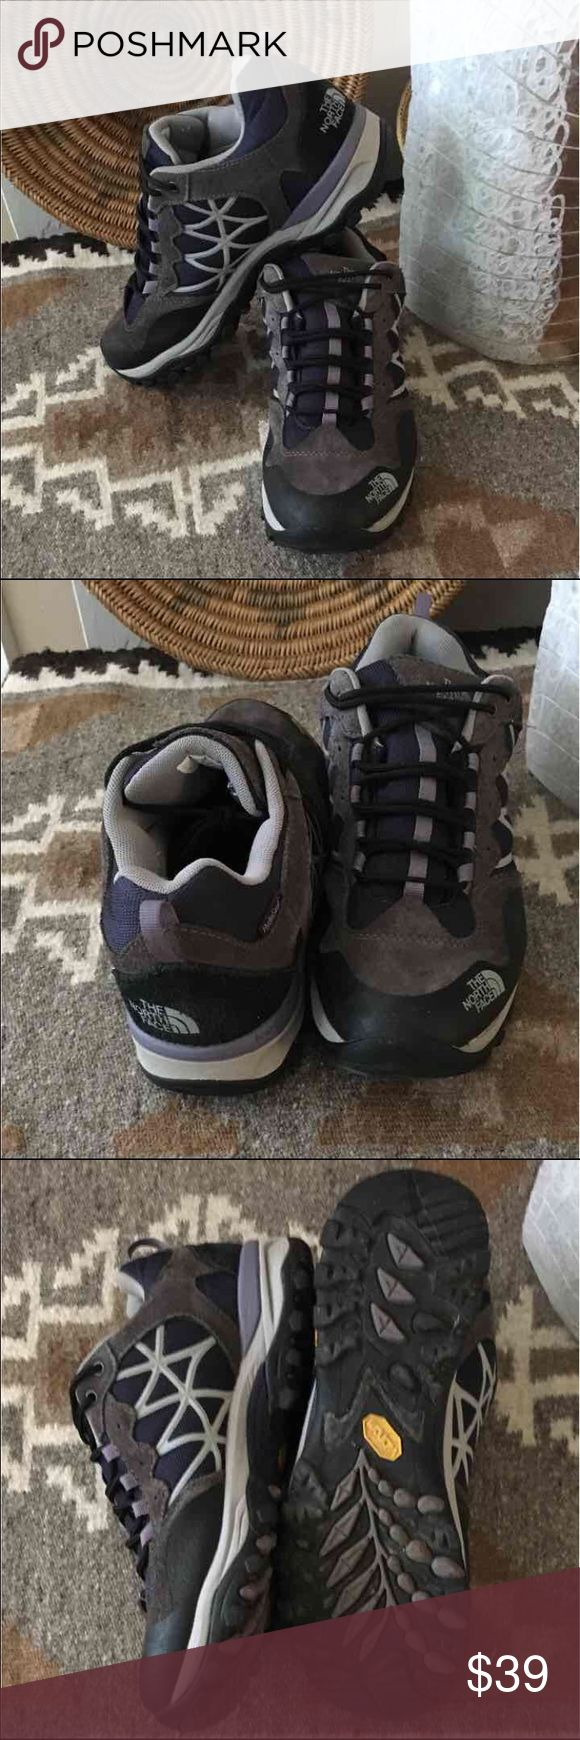 The North face trail shoe Hedgehog 10 These Northface  are in great used condition! Minimal wear and great tread! These have the heel cradle protection and hydro seal waterproof material for an awesome hiking experience. The North Face Shoes Athletic Shoes